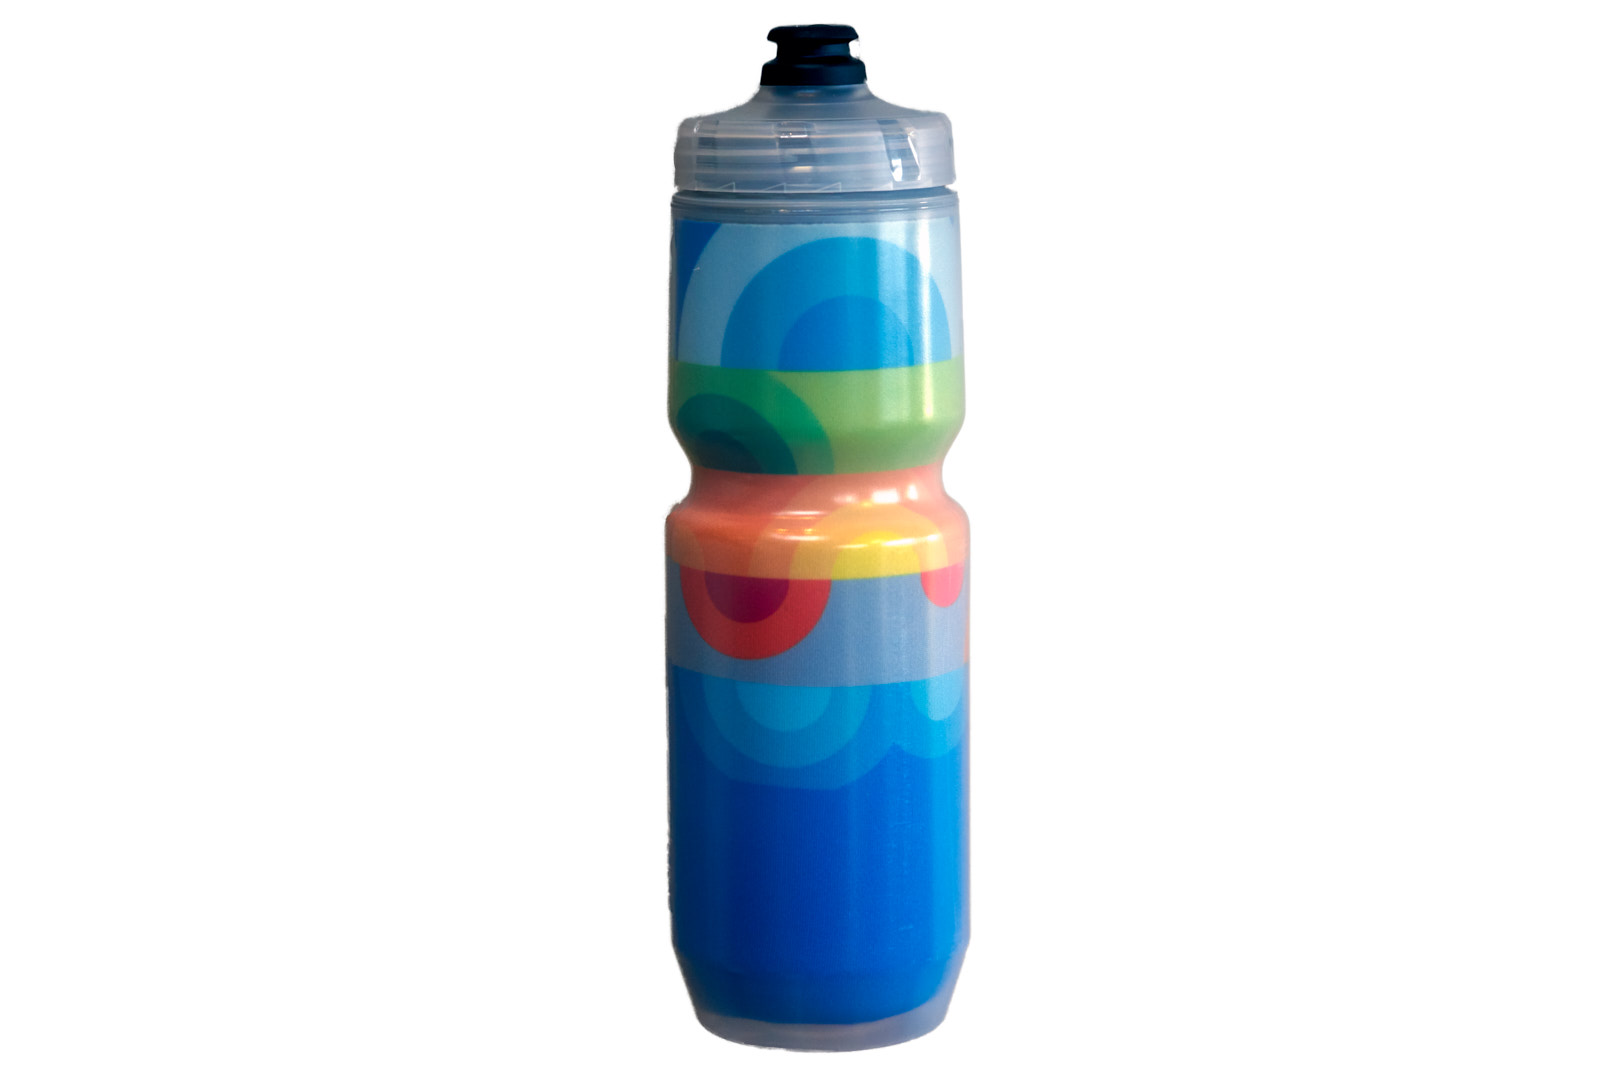 Our Seasons Purist insulated bottle cost $14.99 on Amazon and is available now.